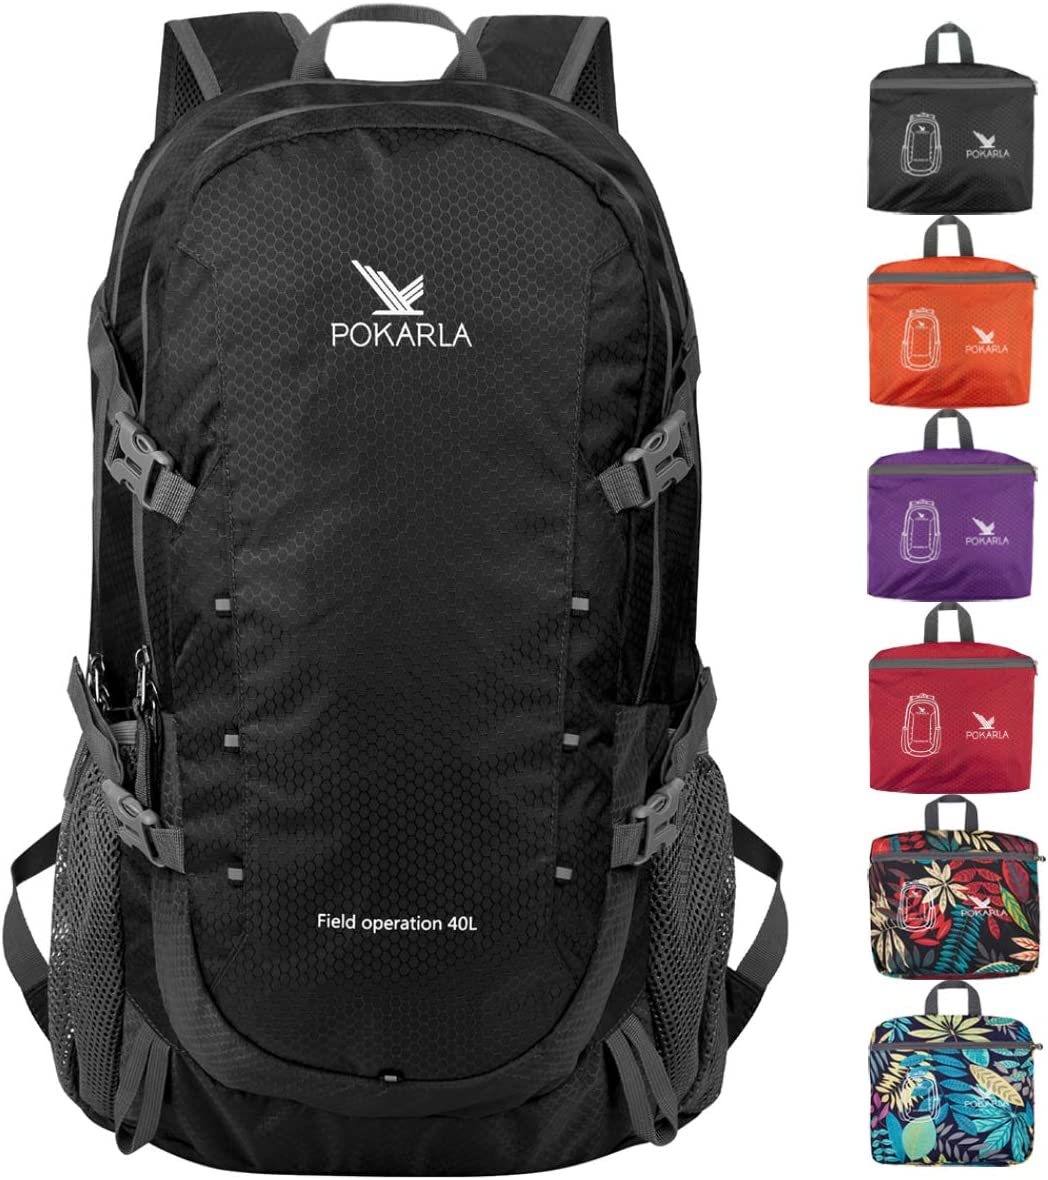 KENYARD Lightweight Foldable Backpack, Ultralight Handy Packable Day Pack for Camping Backpacking Outdoor Sports Back Pack